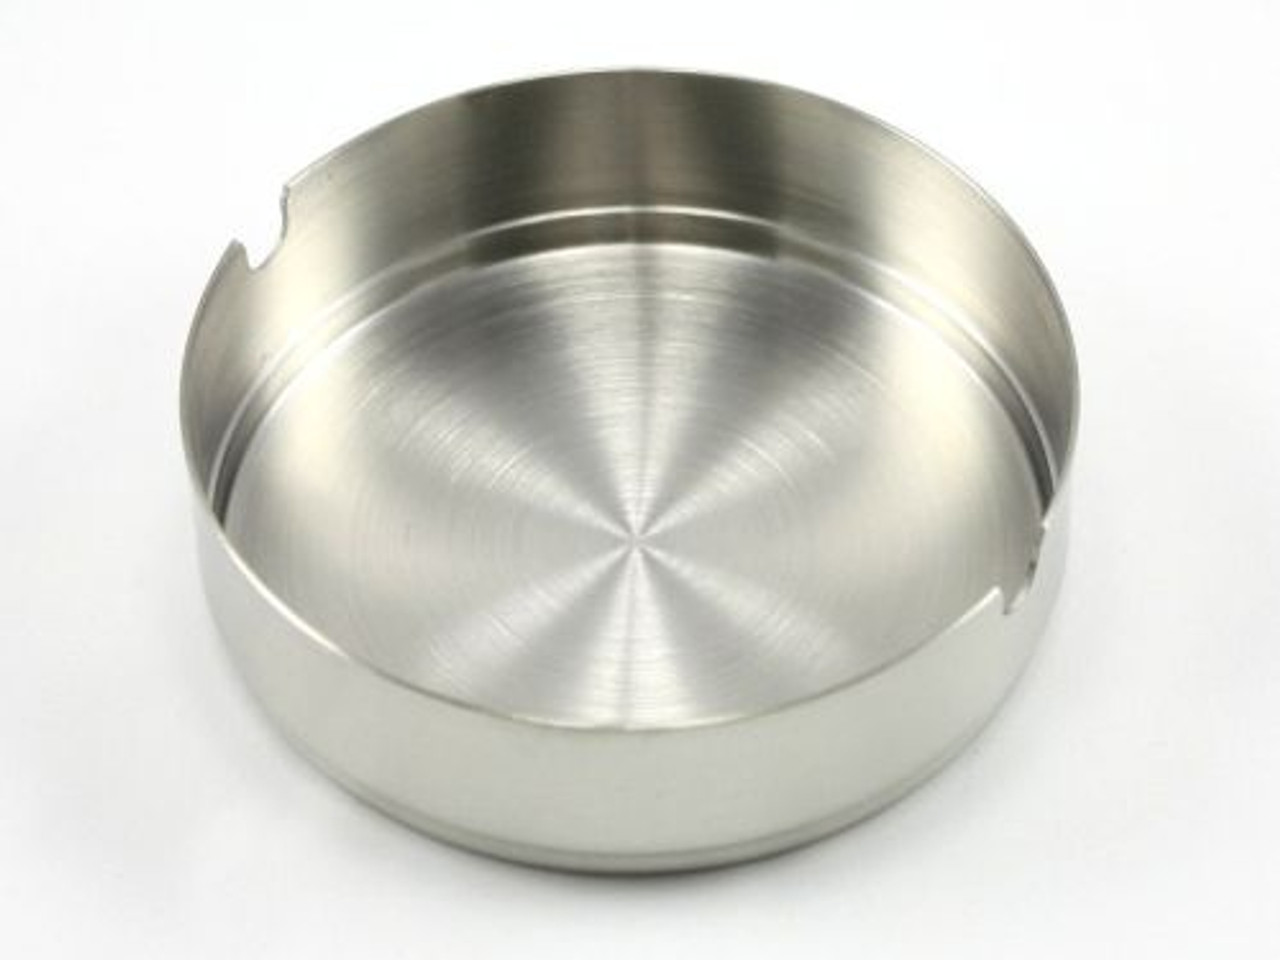 Small Stainless Steel Cigarette Ashtray